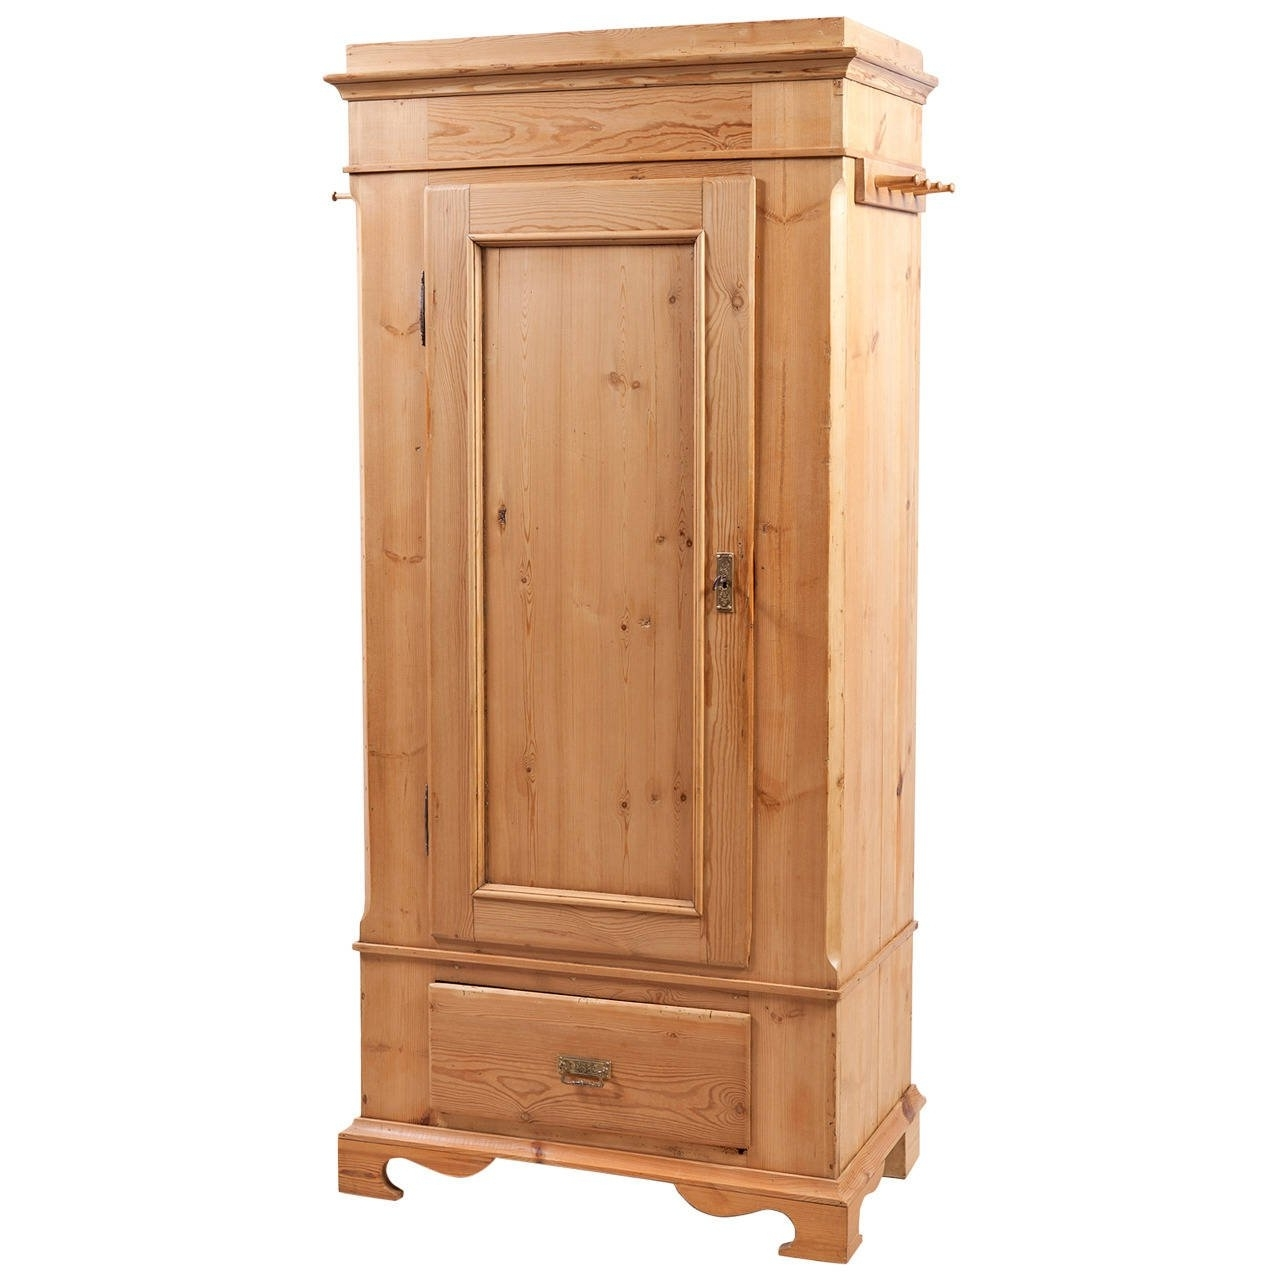 Popular Single Door Danish Wardrobe Armoire In Pine, Circa 1845 At 1Stdibs With Regard To Pine Wardrobes With Drawers (View 11 of 15)